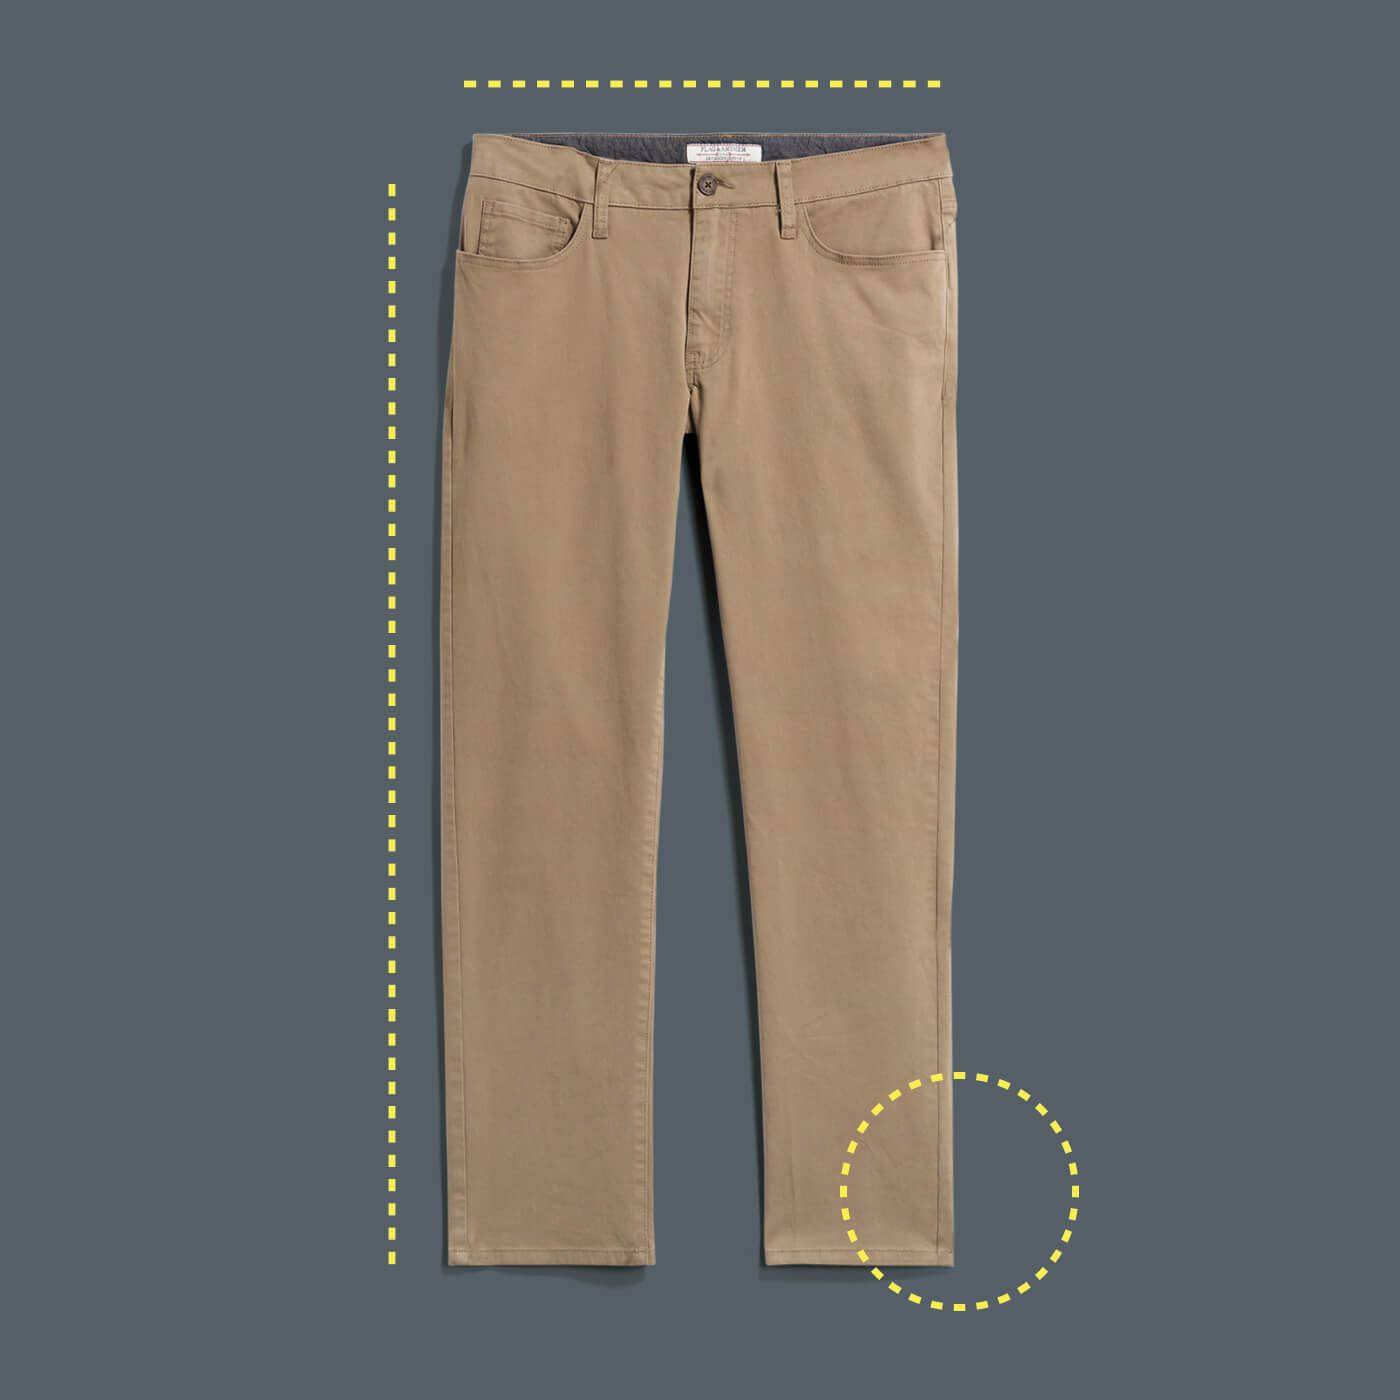 work clothes fit guide